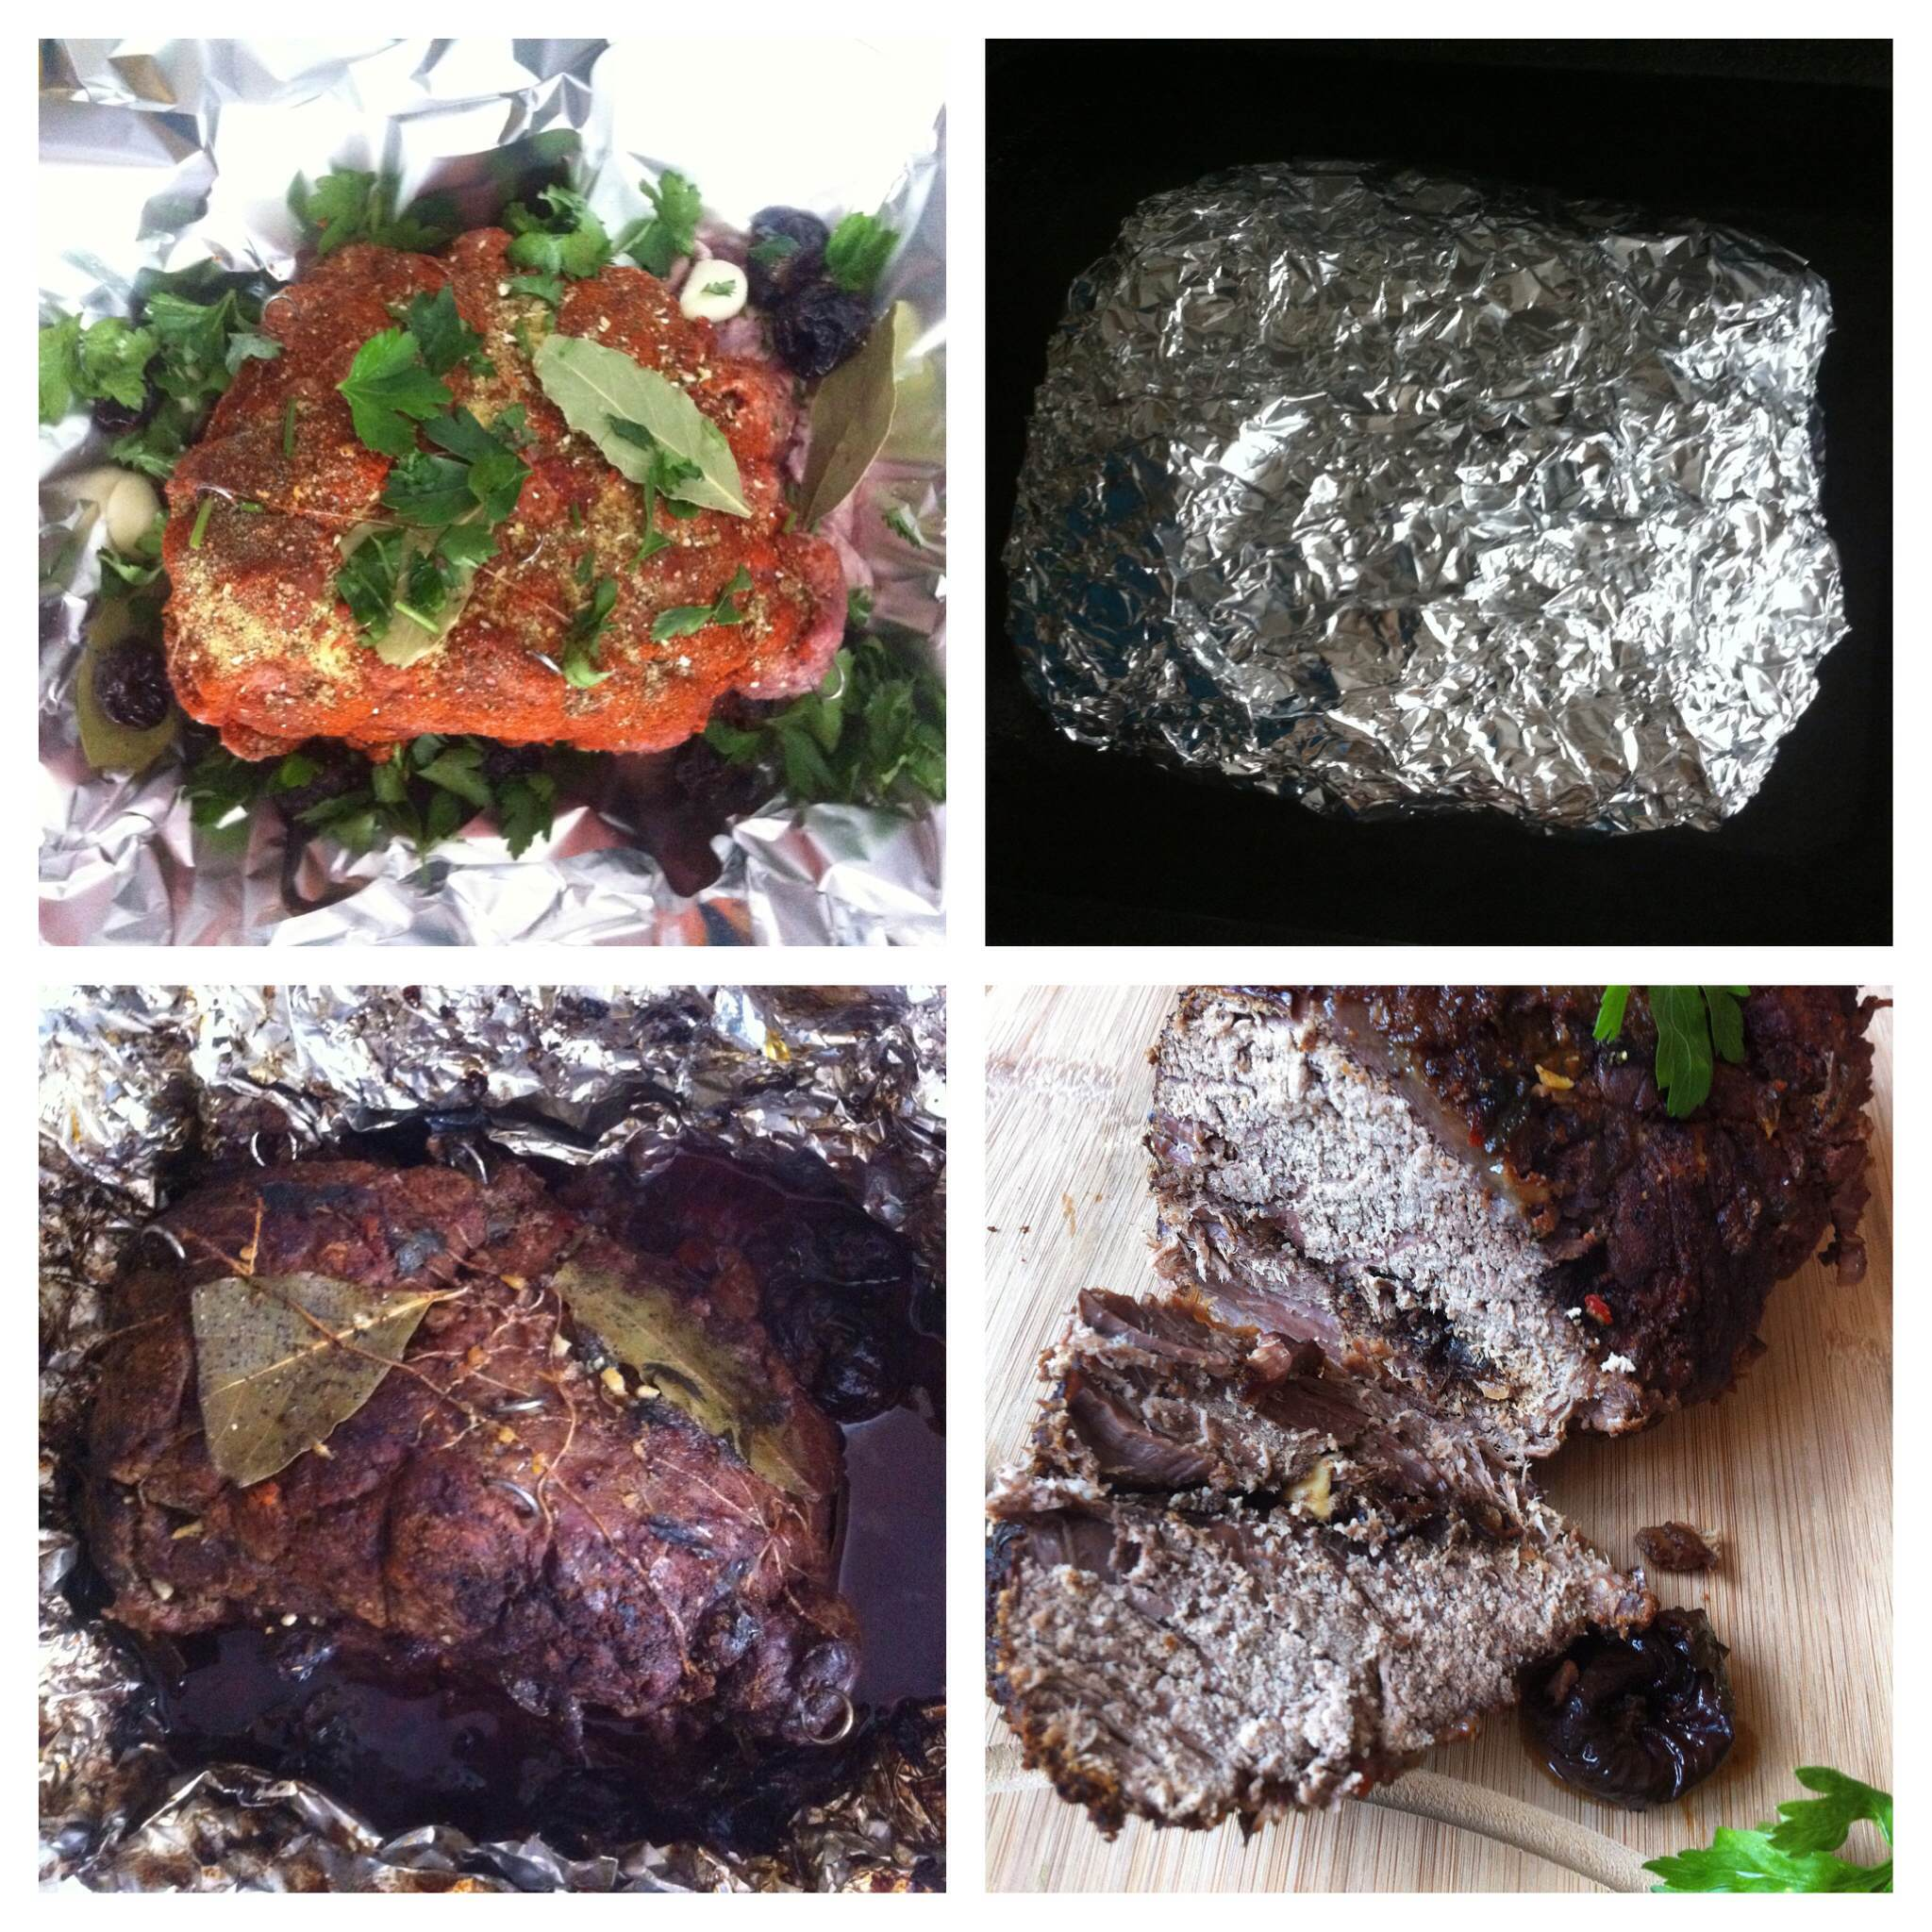 Parsley. Bay leaves. Spices. Wine. Cover up. Bake,. Unwrap. Enjoy.